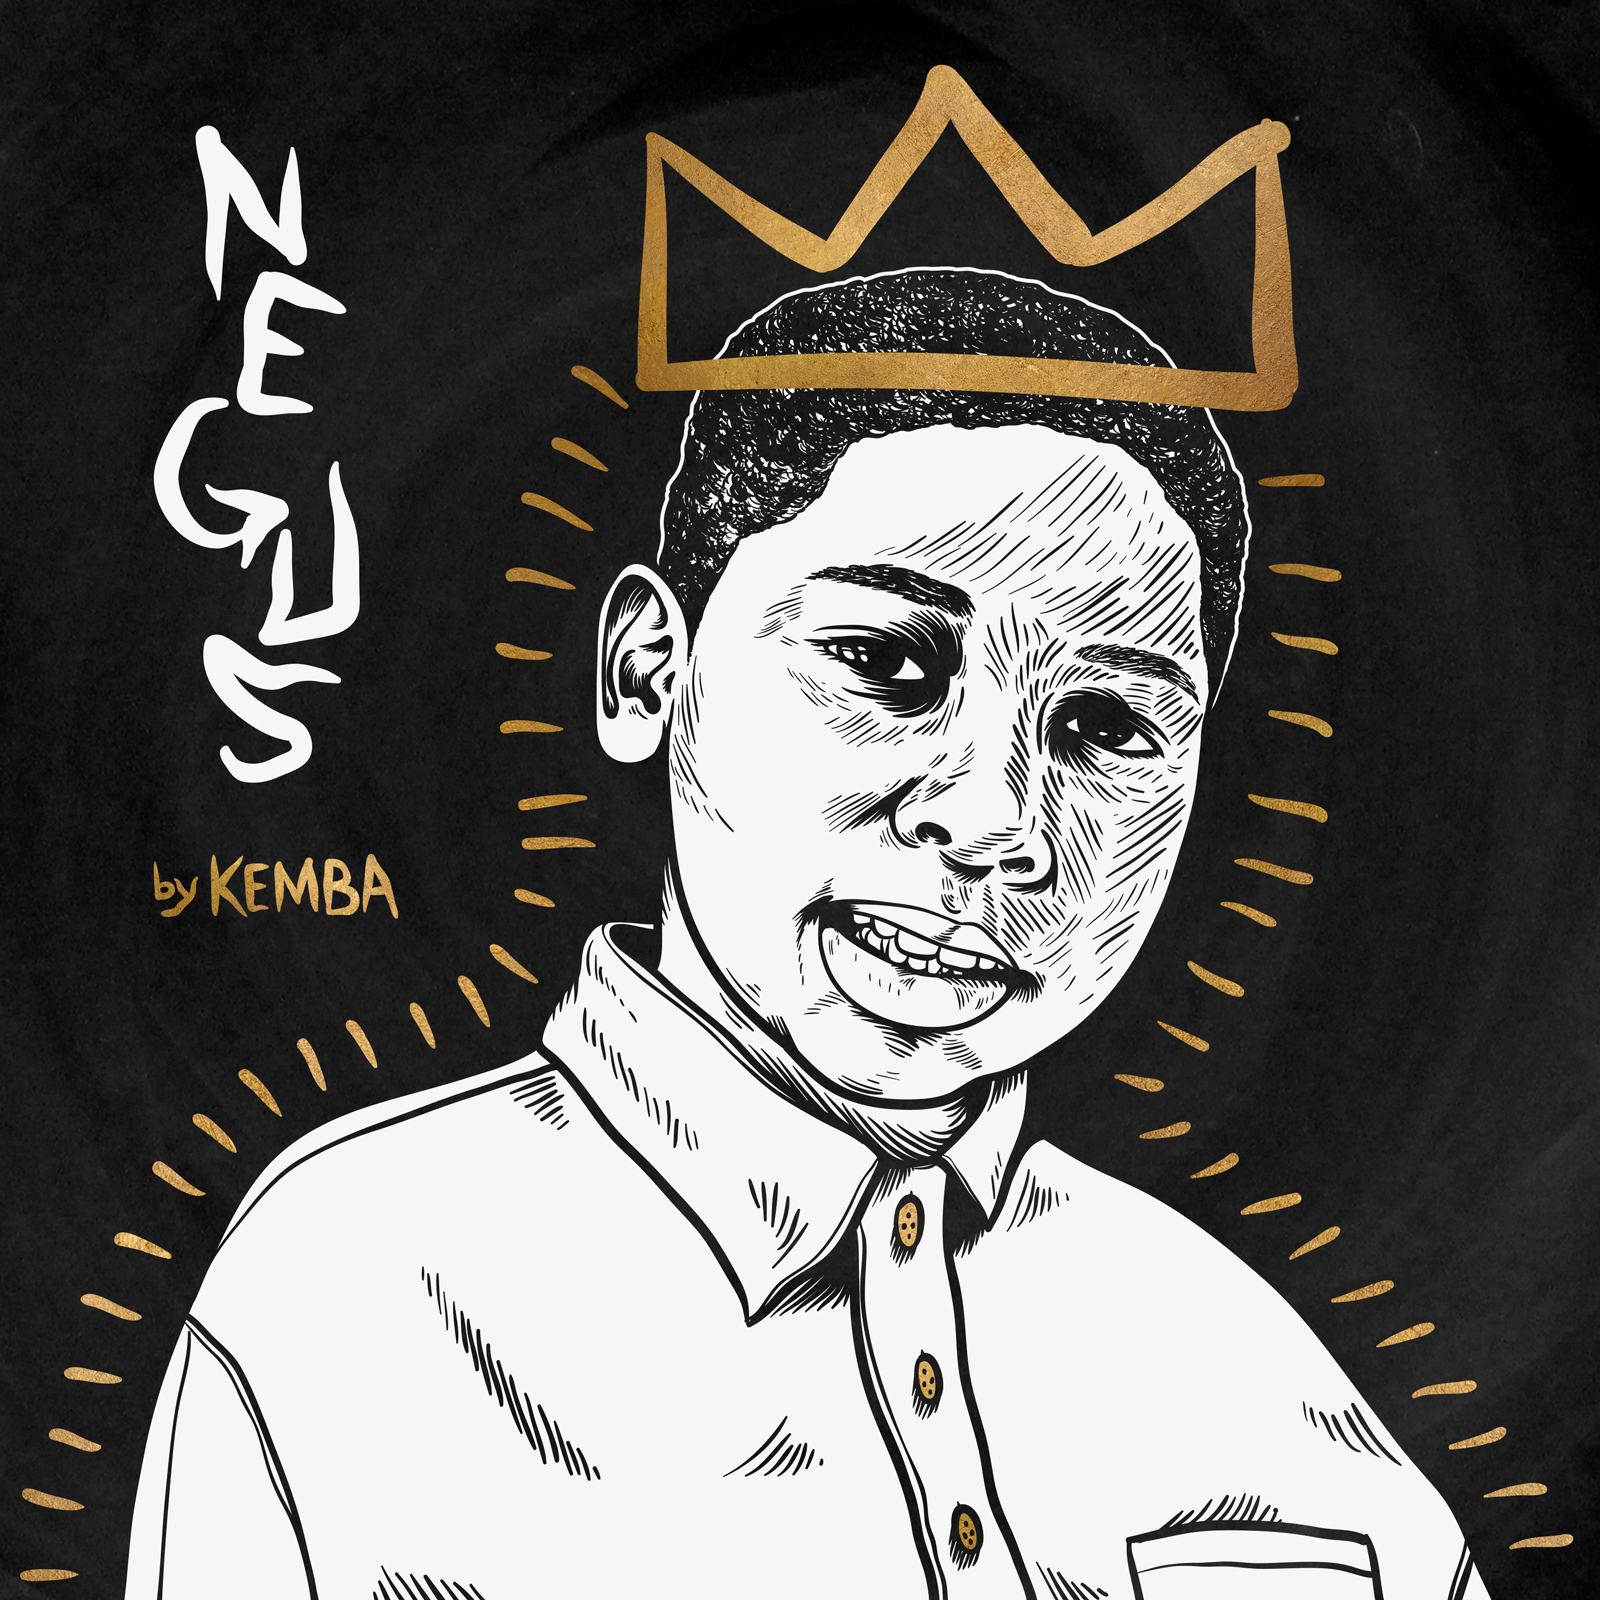 NEGUS_By_KEMBA_COVER3